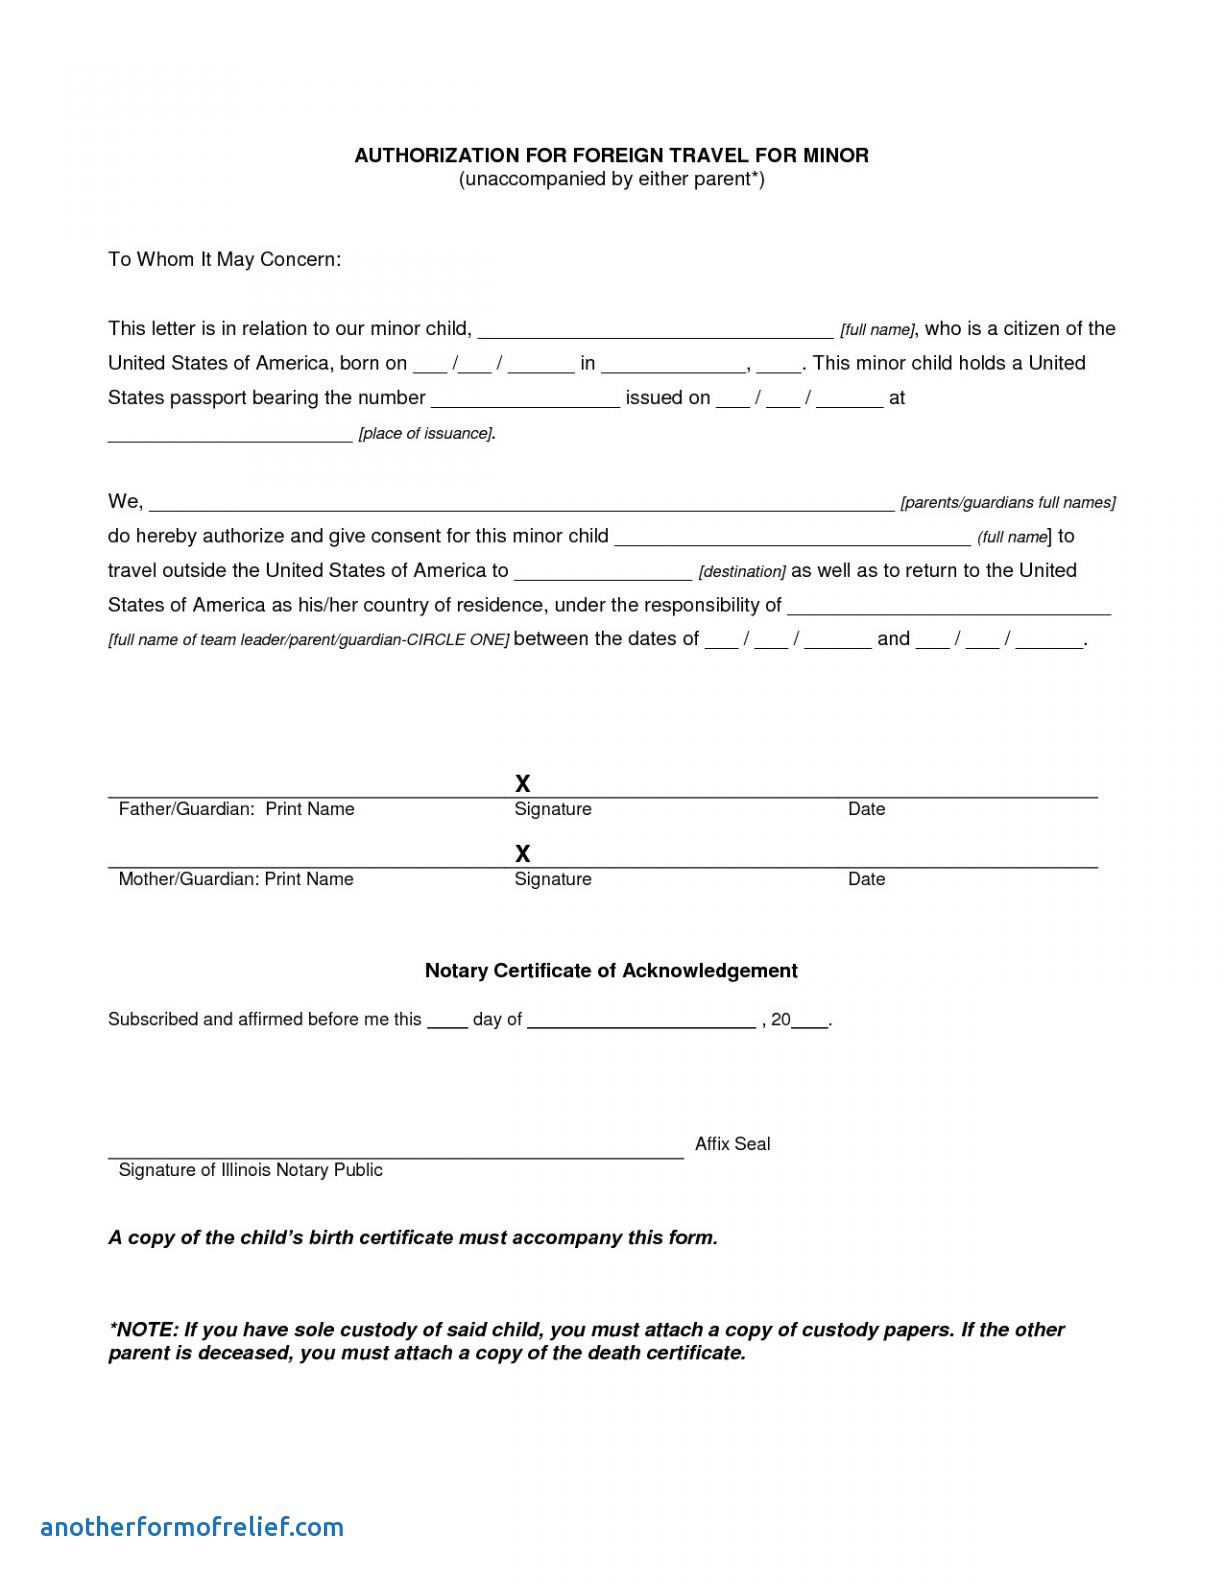 Parental Consent Permission Letter Template - Permission Letter to Travel Refrence Microsoft Word Consent